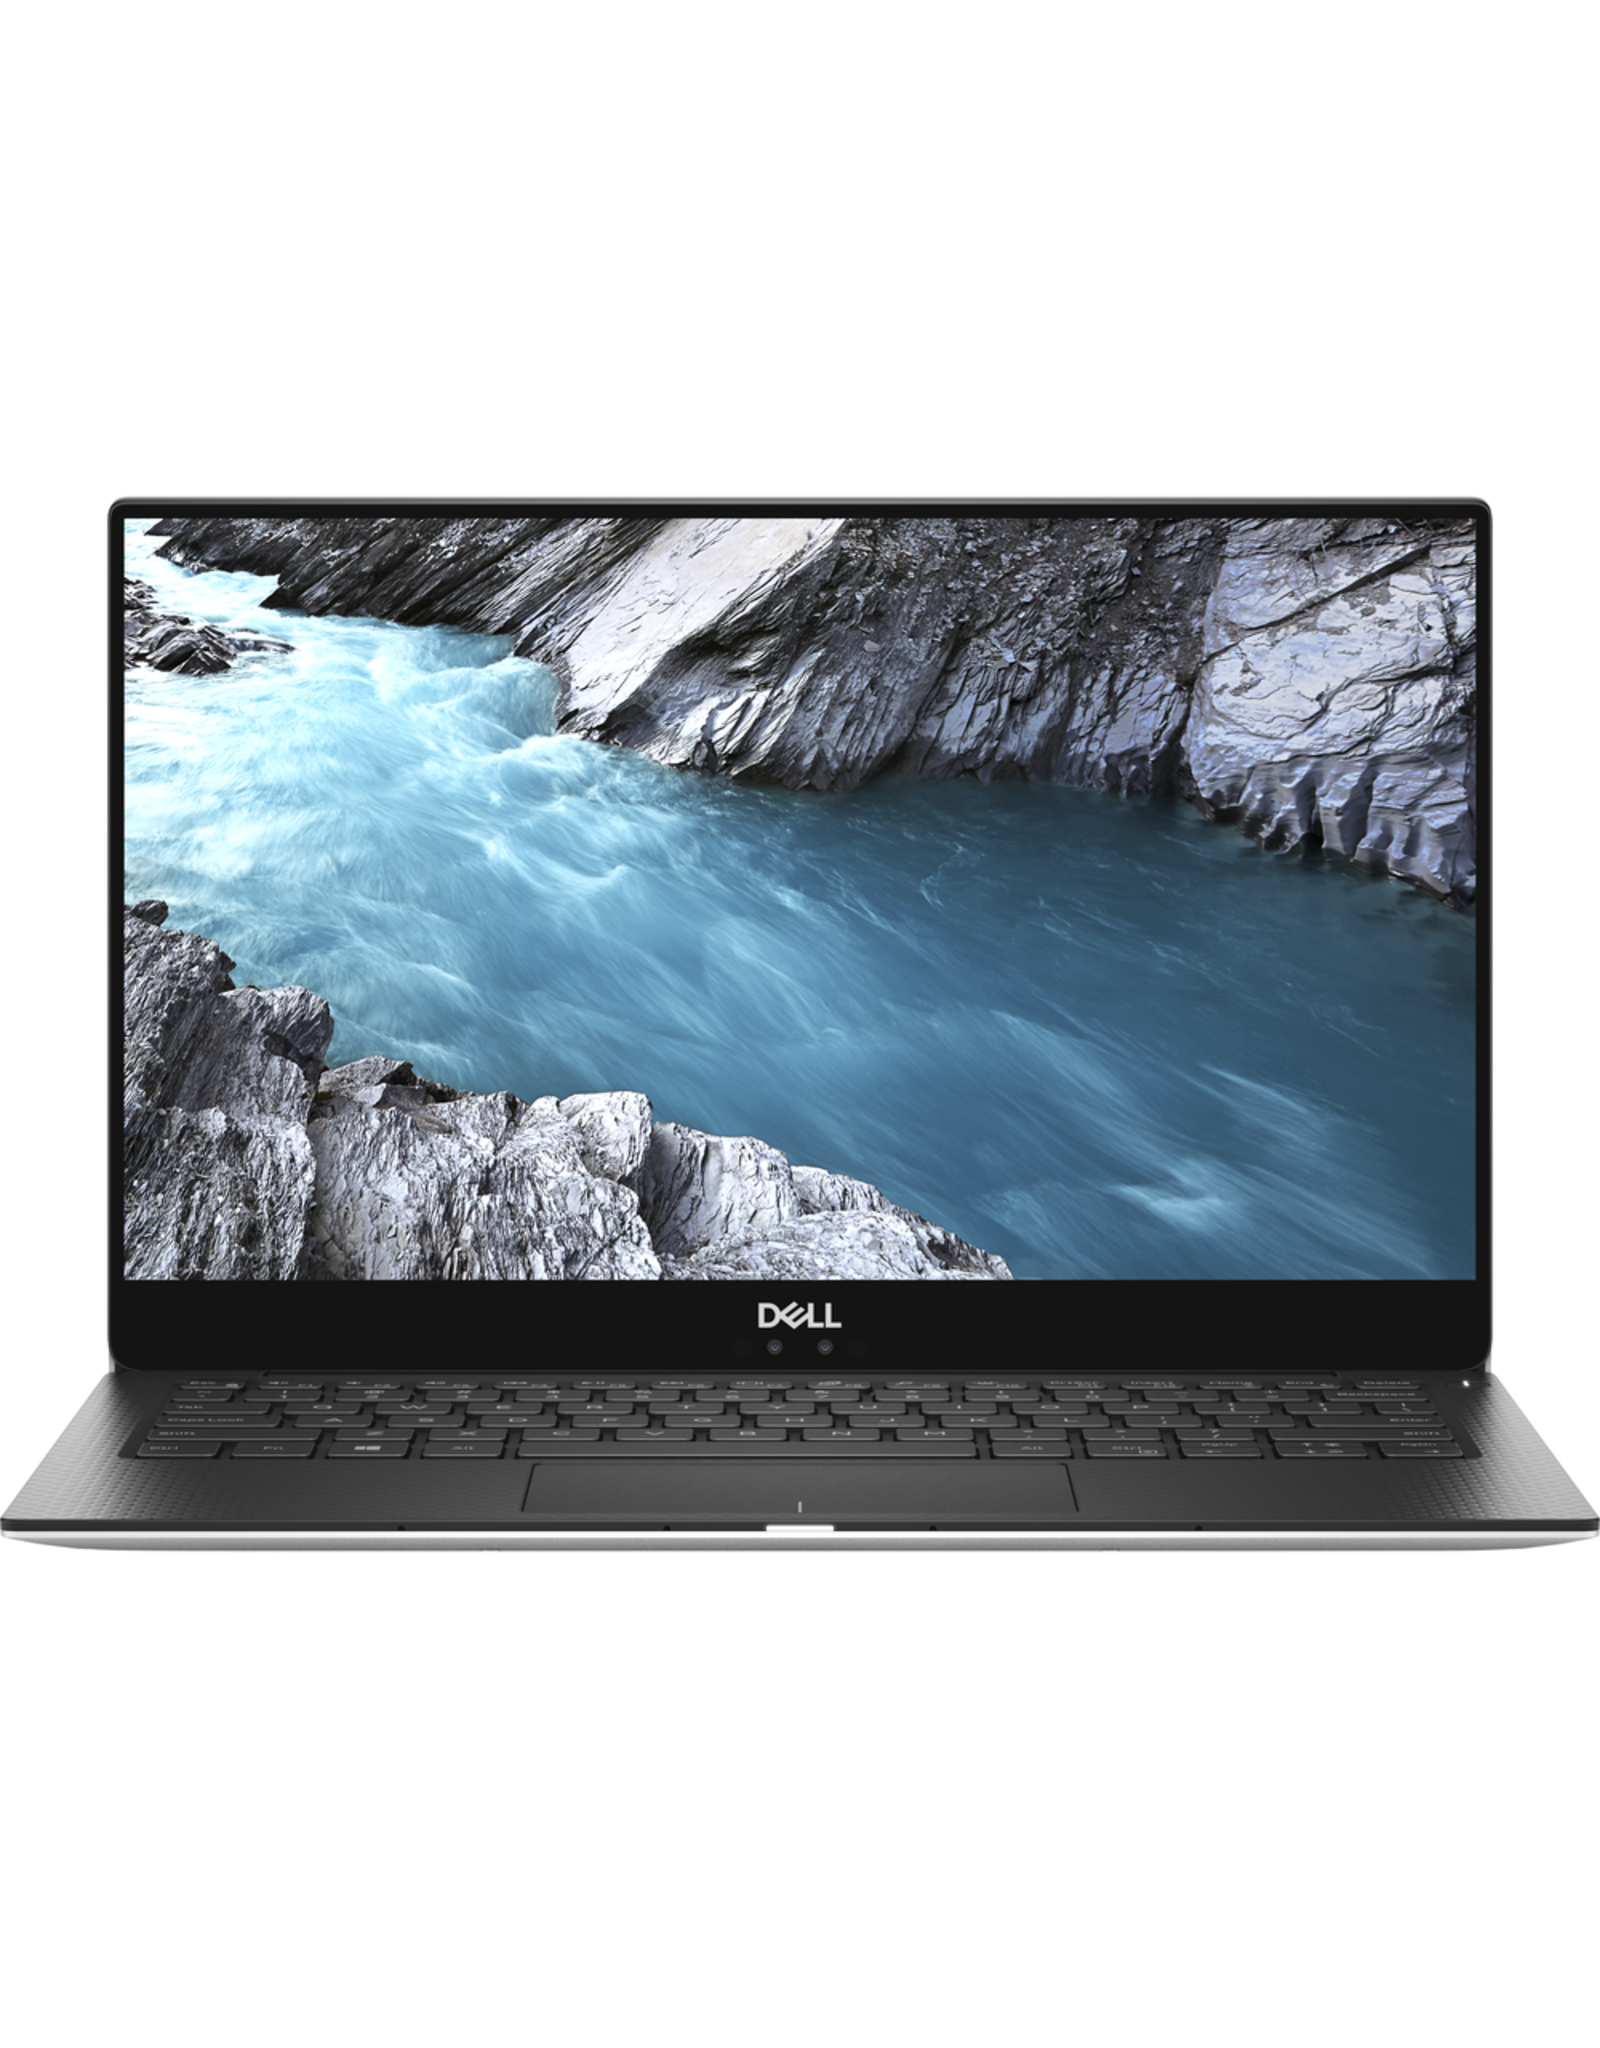 "Dell Dell XPS 13 (7390) 13.3"" Touch i5-10210U/8GB/256GB SSD"